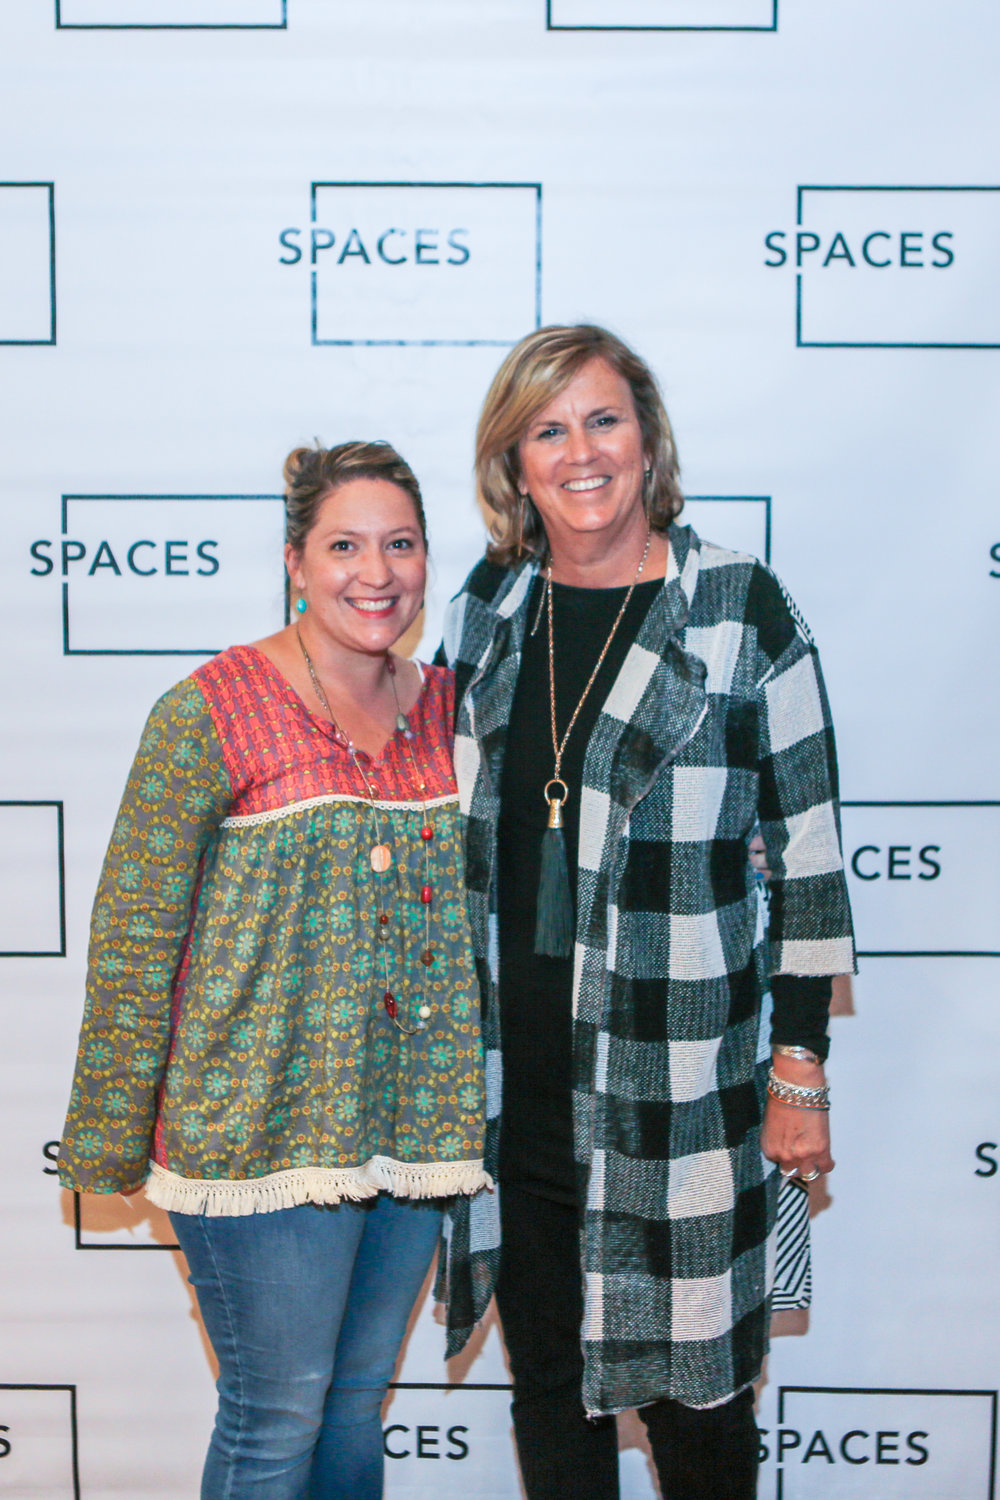 Spaces Event-1052.jpg